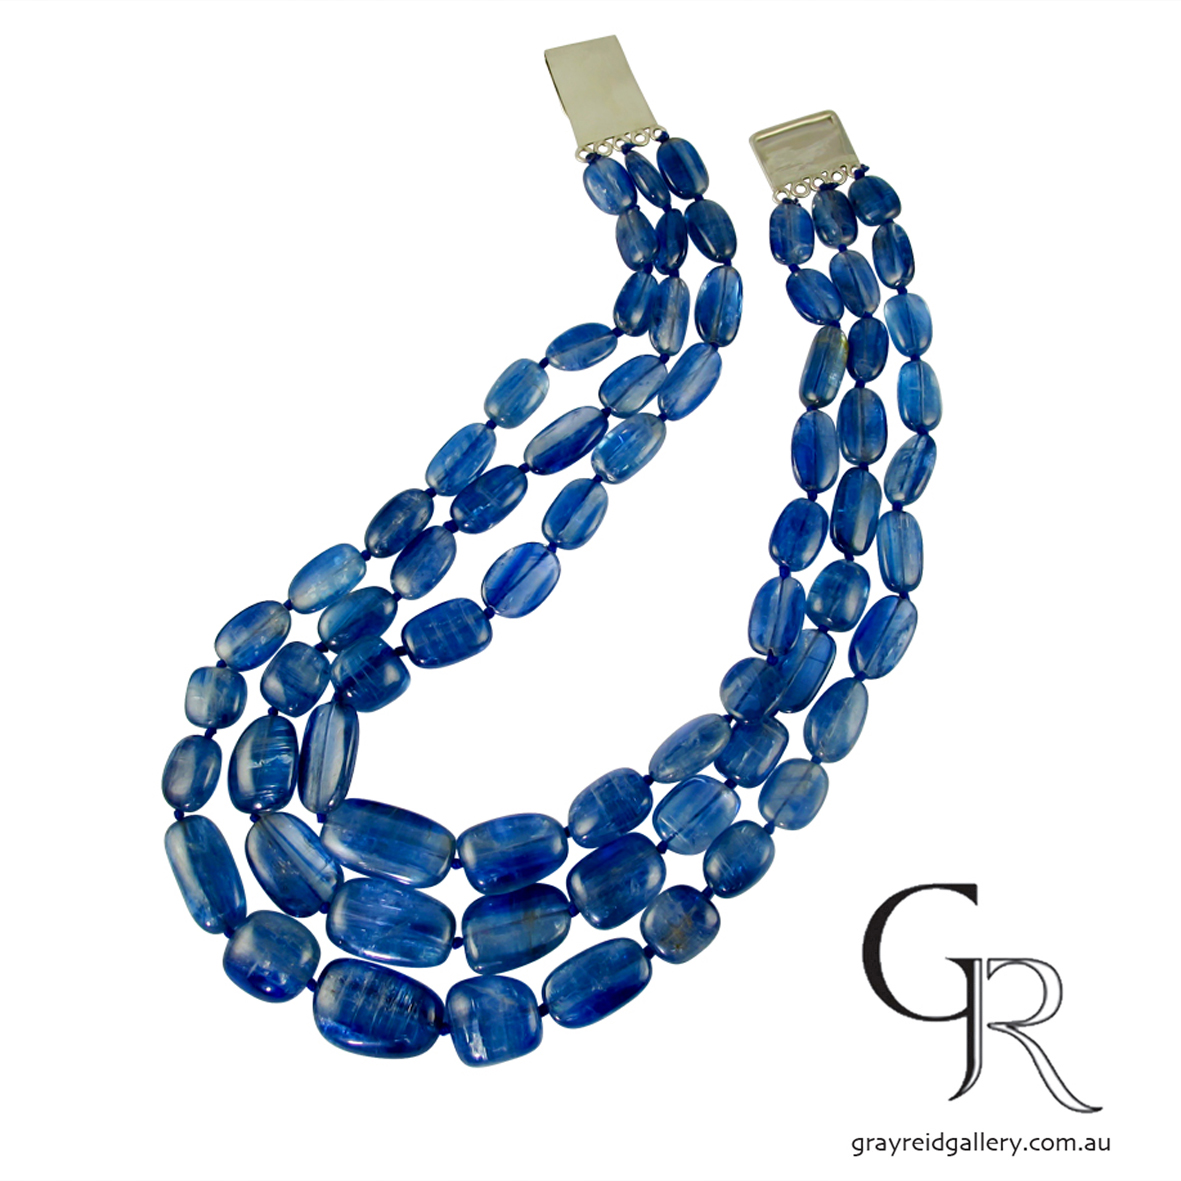 Tumbled Kyanite Beads With Silver Clasp